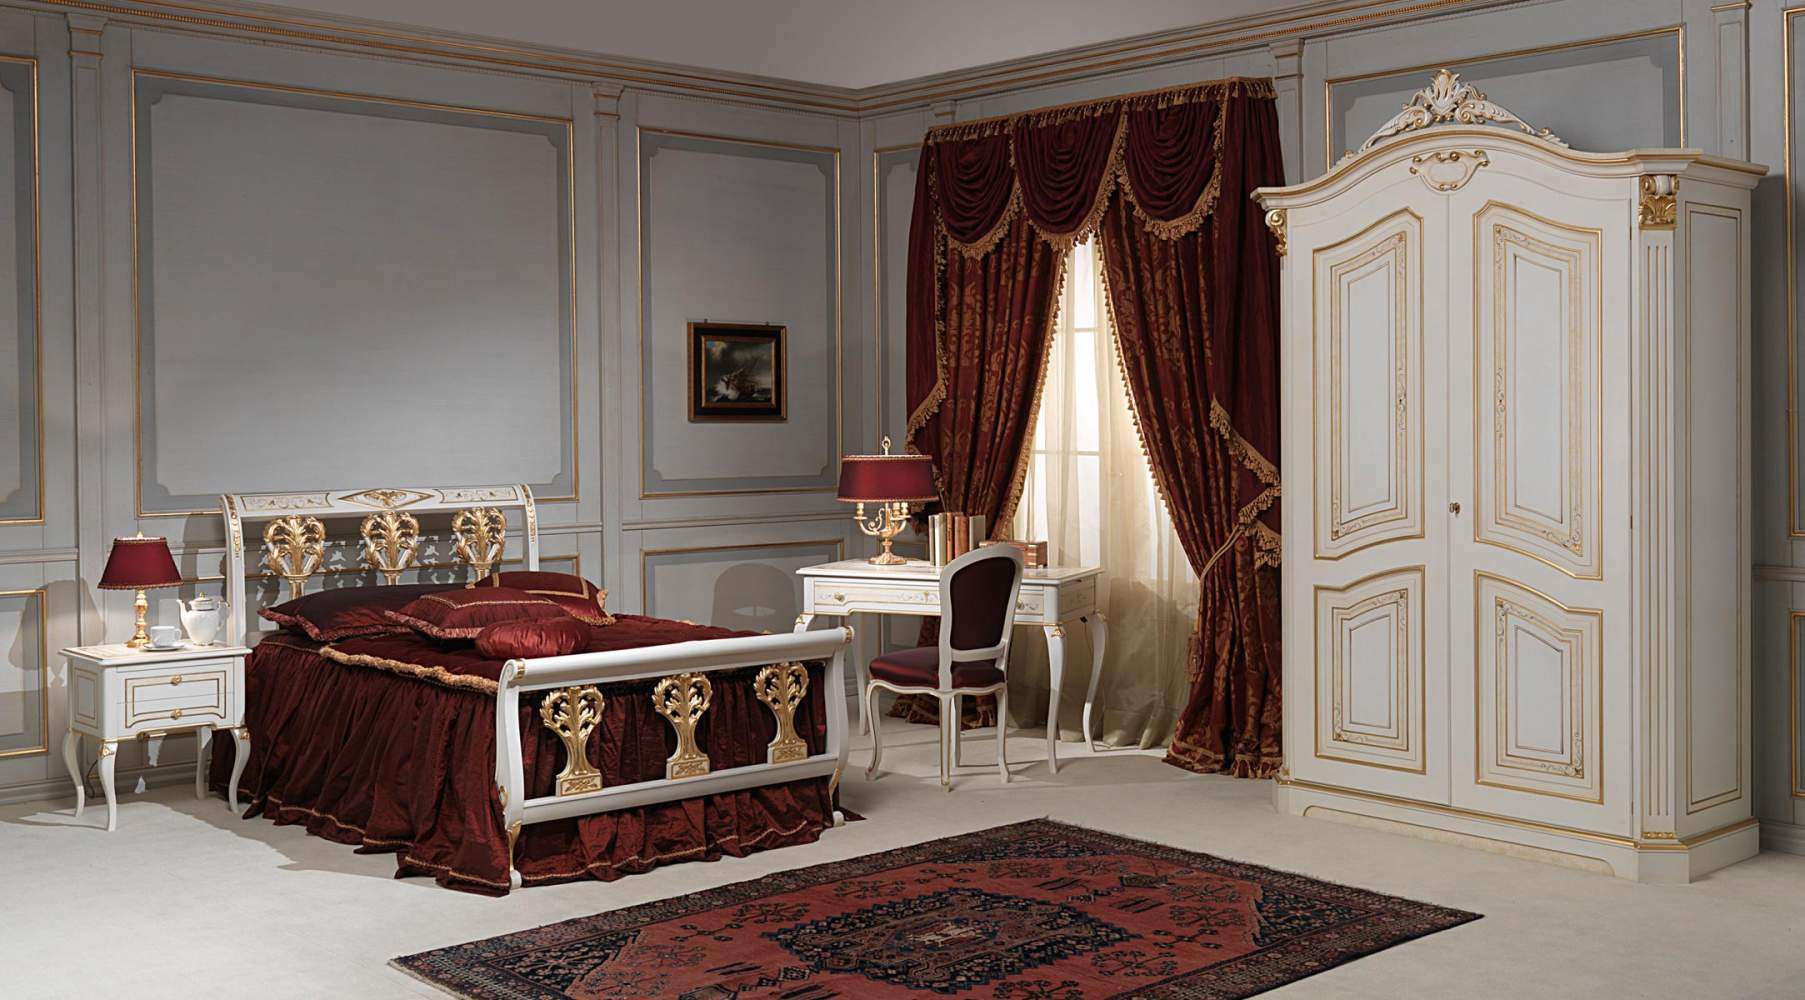 French bedroom 18th century Rubens | Vimercati Classic Furniture